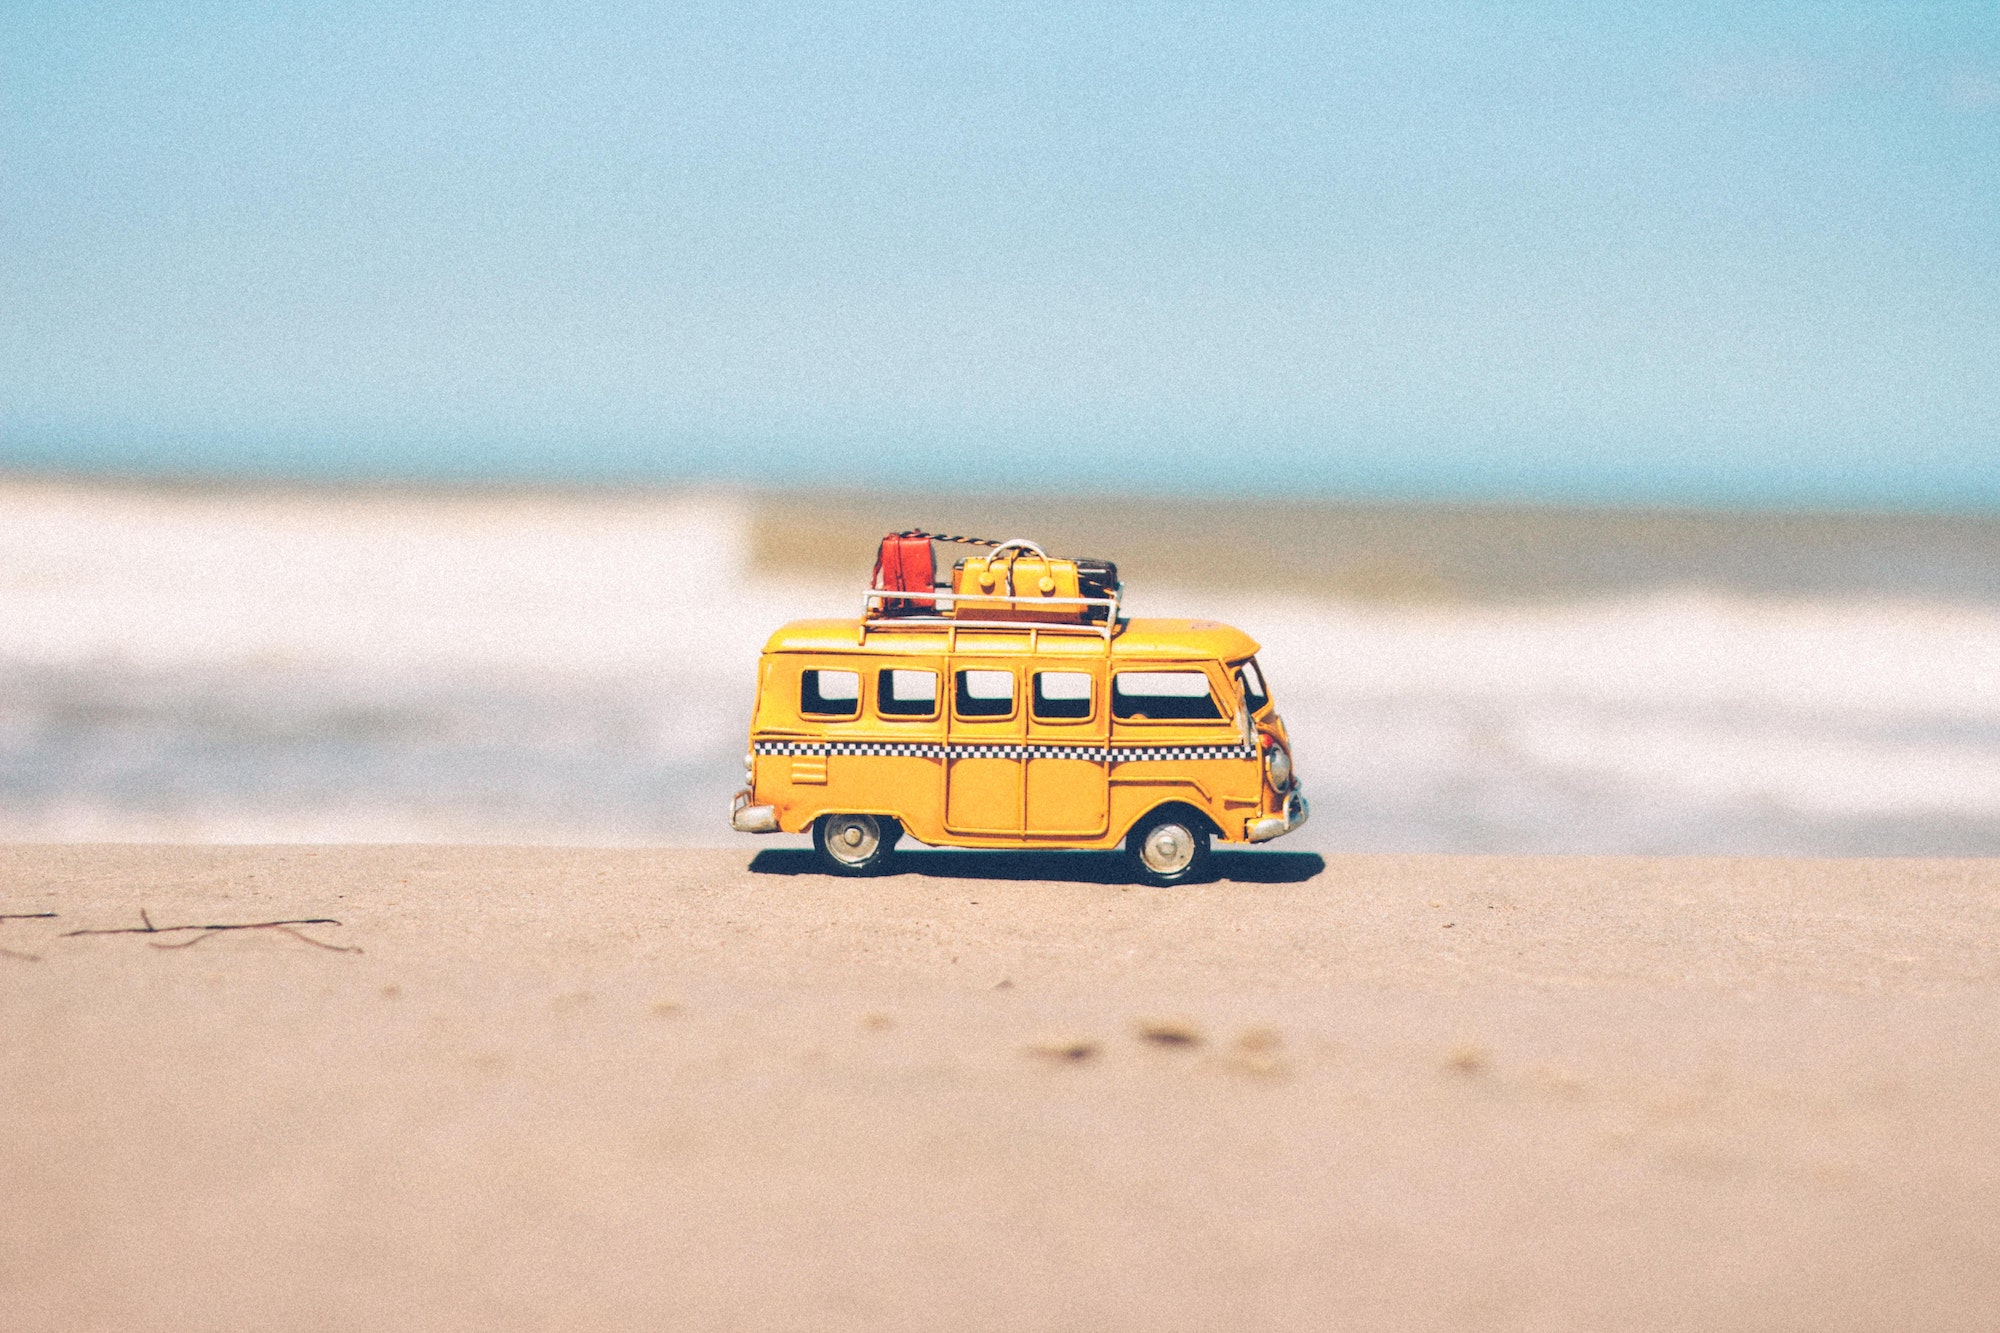 Yellow toy van carrying luggages placed on the sand of a beach with the waves crashing in the background